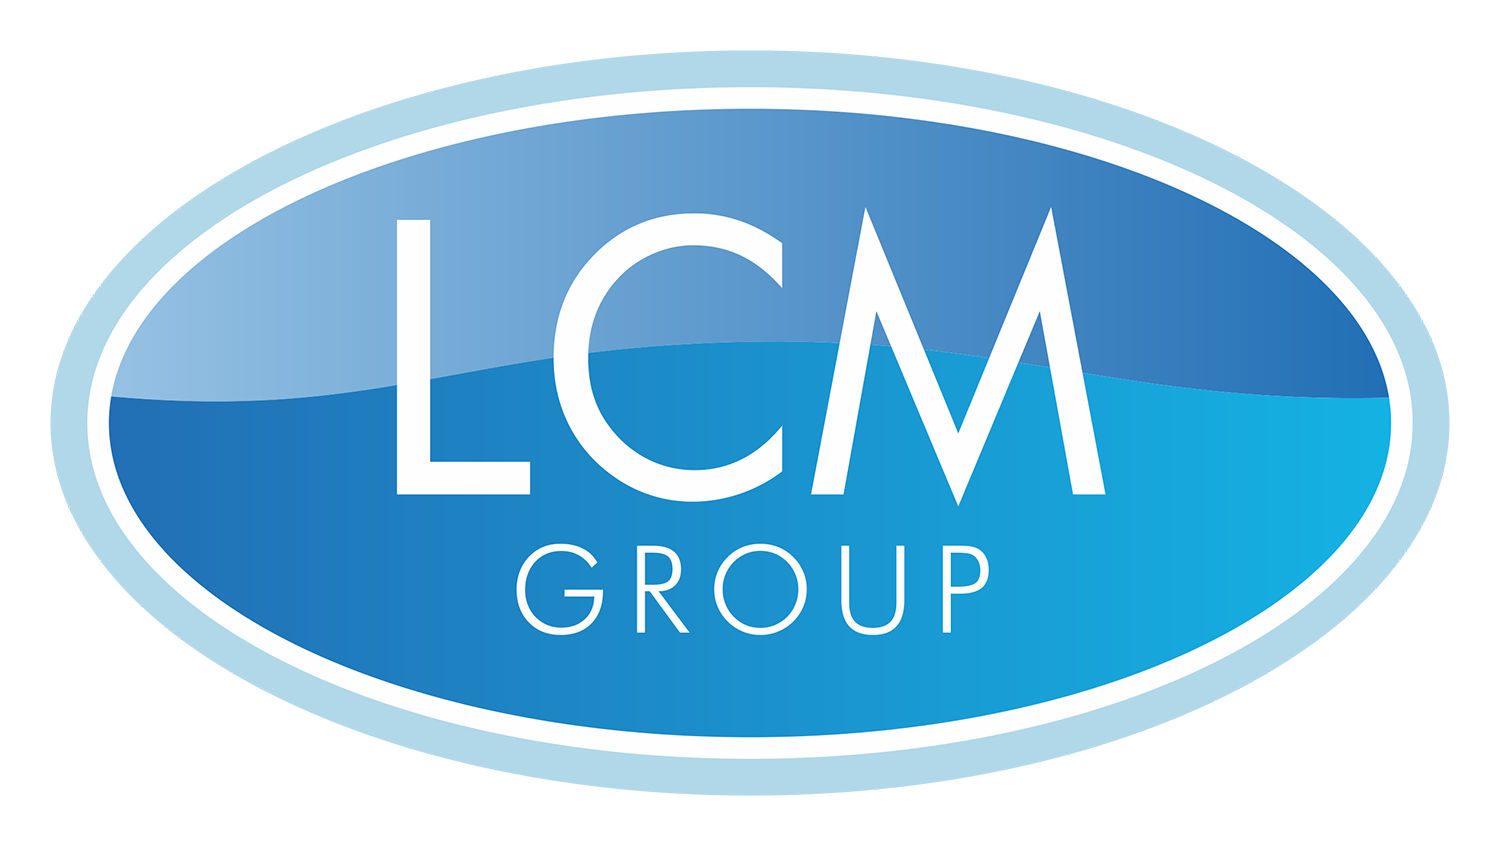 LCM Group